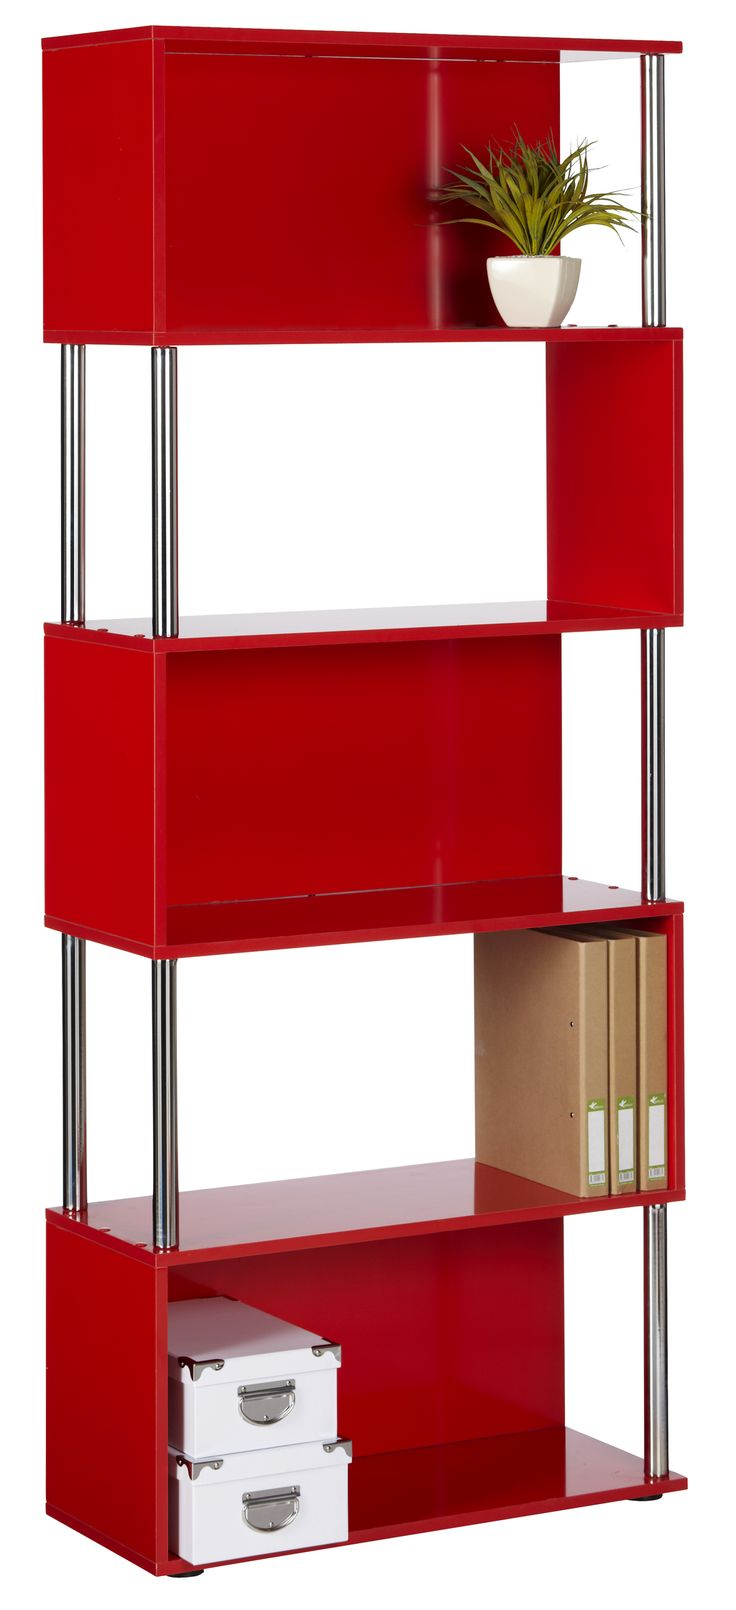 Hummingbird Hayes Chrome and Gloss Bookcase Red ... not quite sure it will fit where I want it to, but if it did ... that would tie in my glass block window and kitchen into my study ... very nice!